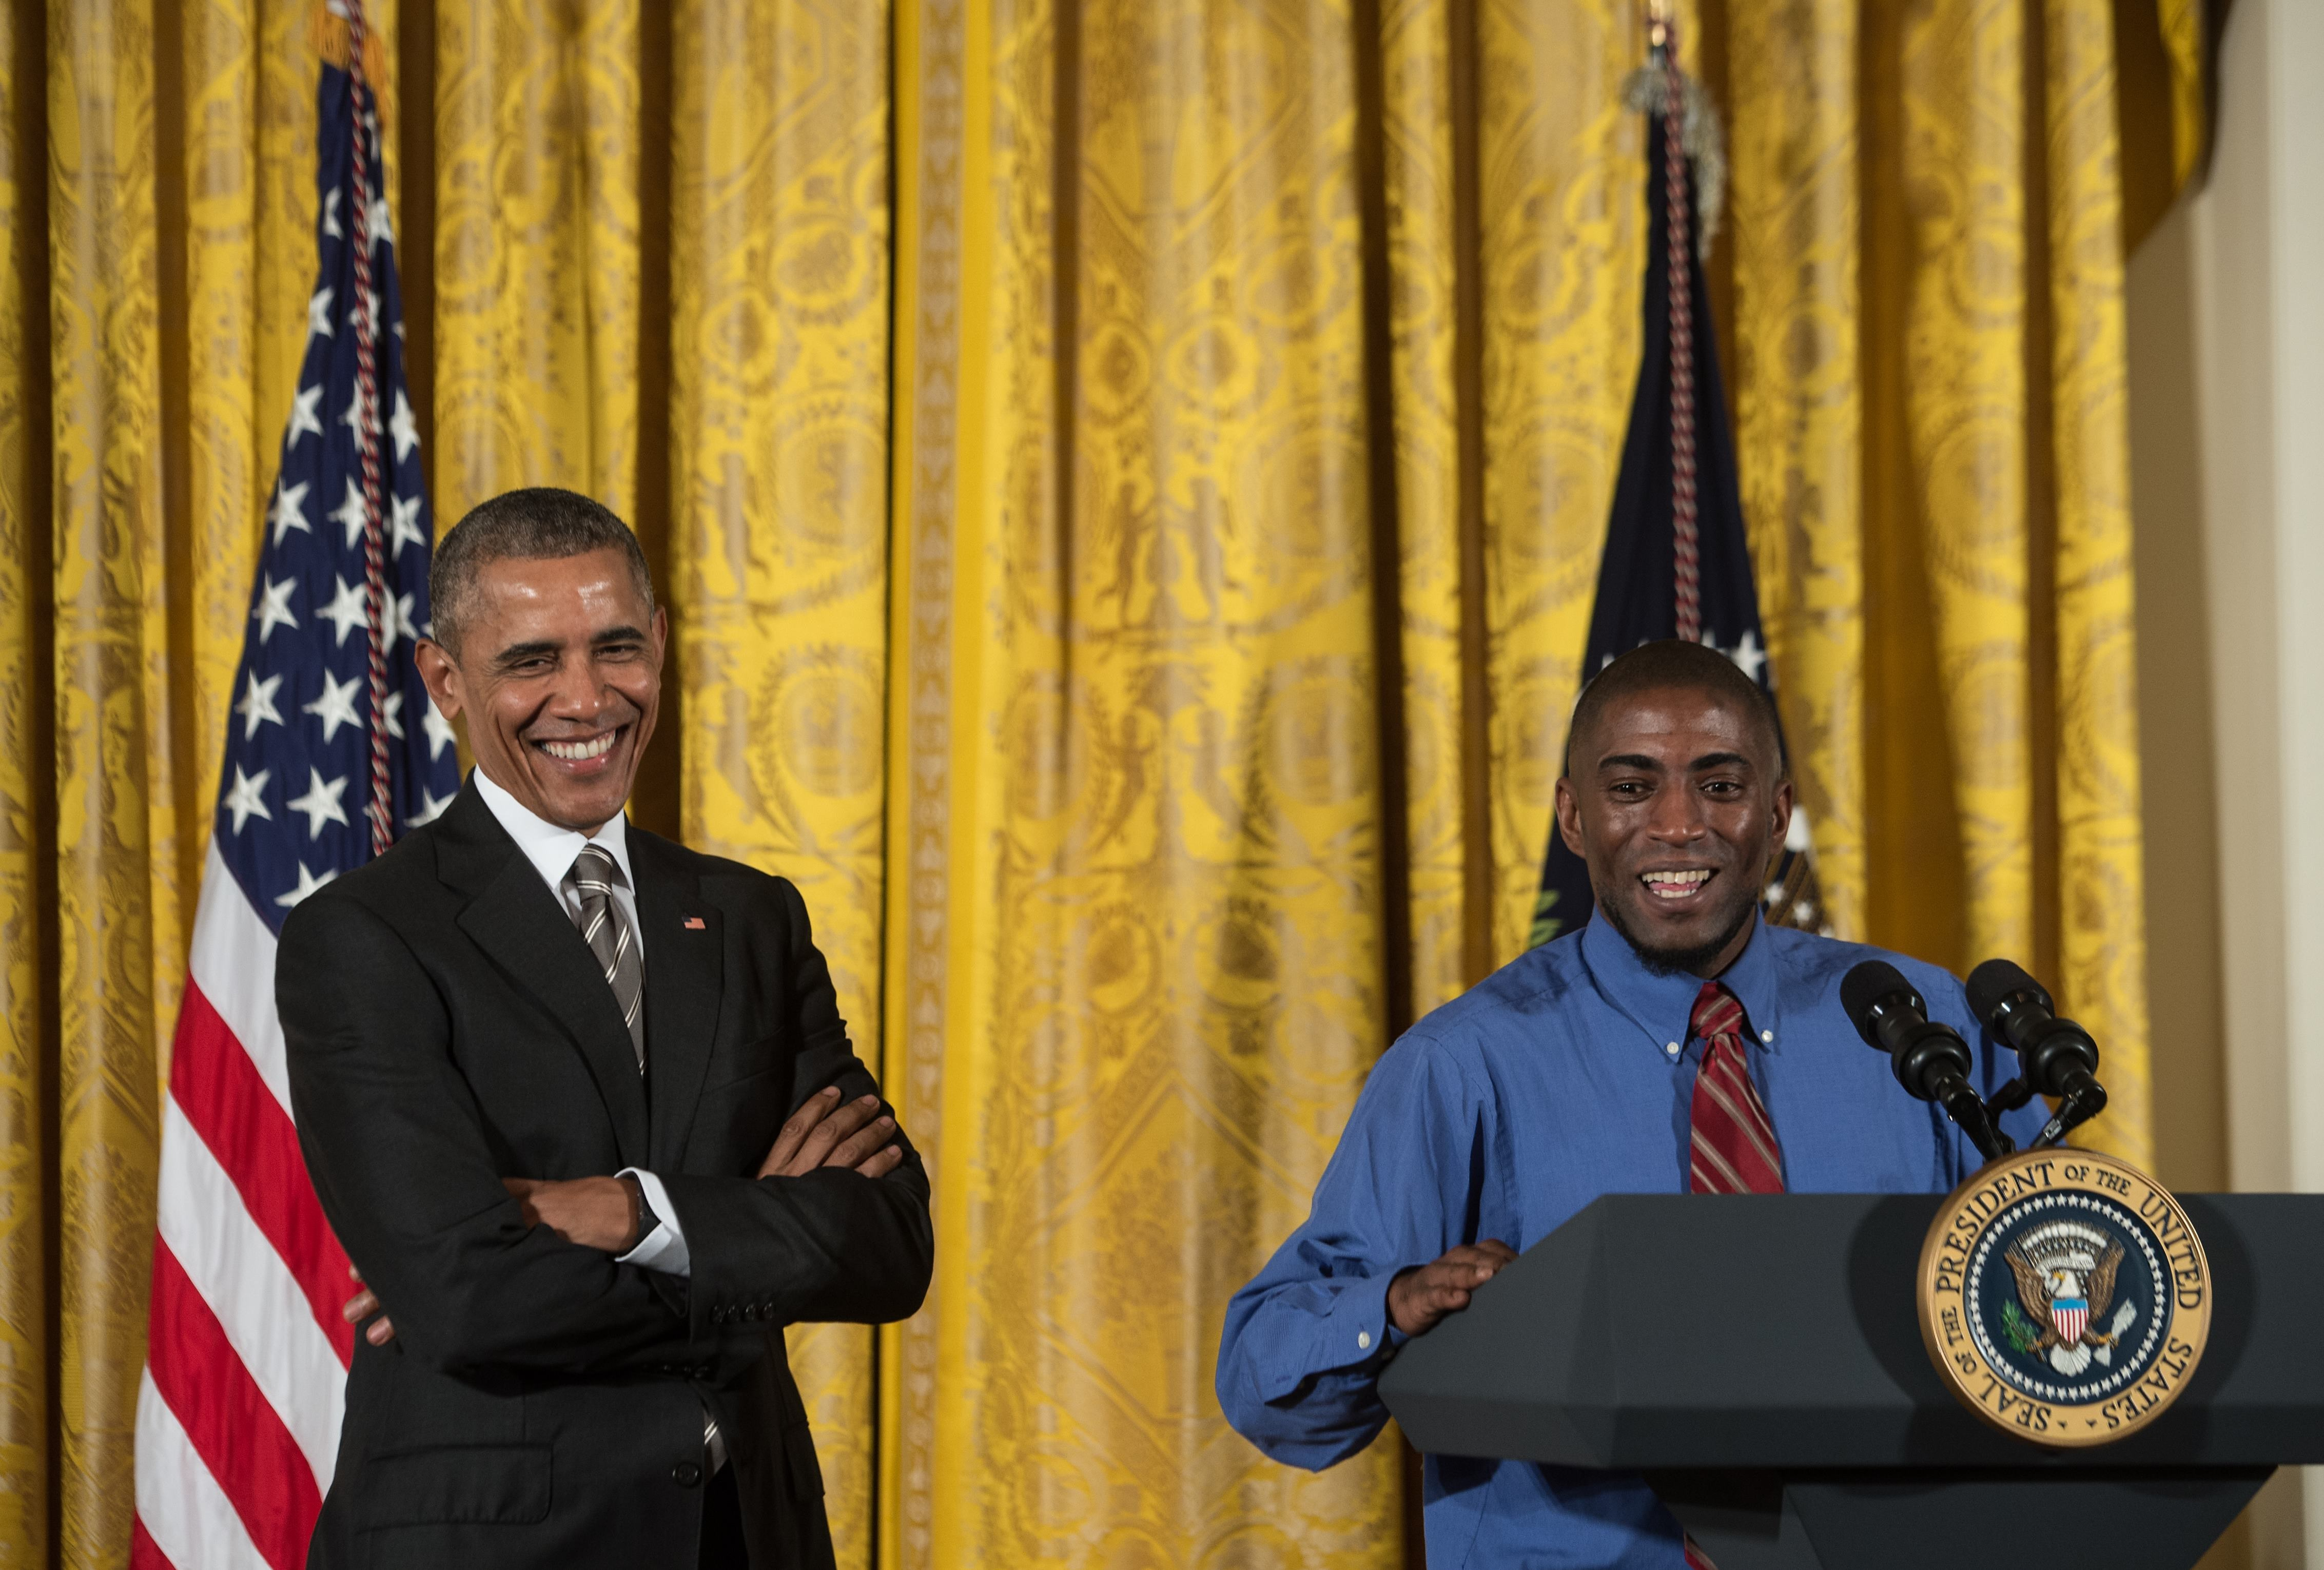 US President Barack Obama (L) smiles as he is introduced by fast food worker Terrence Wise at the Summit on Worker Voice at the White House in Washington, DC, on Oct. 7, 2015.